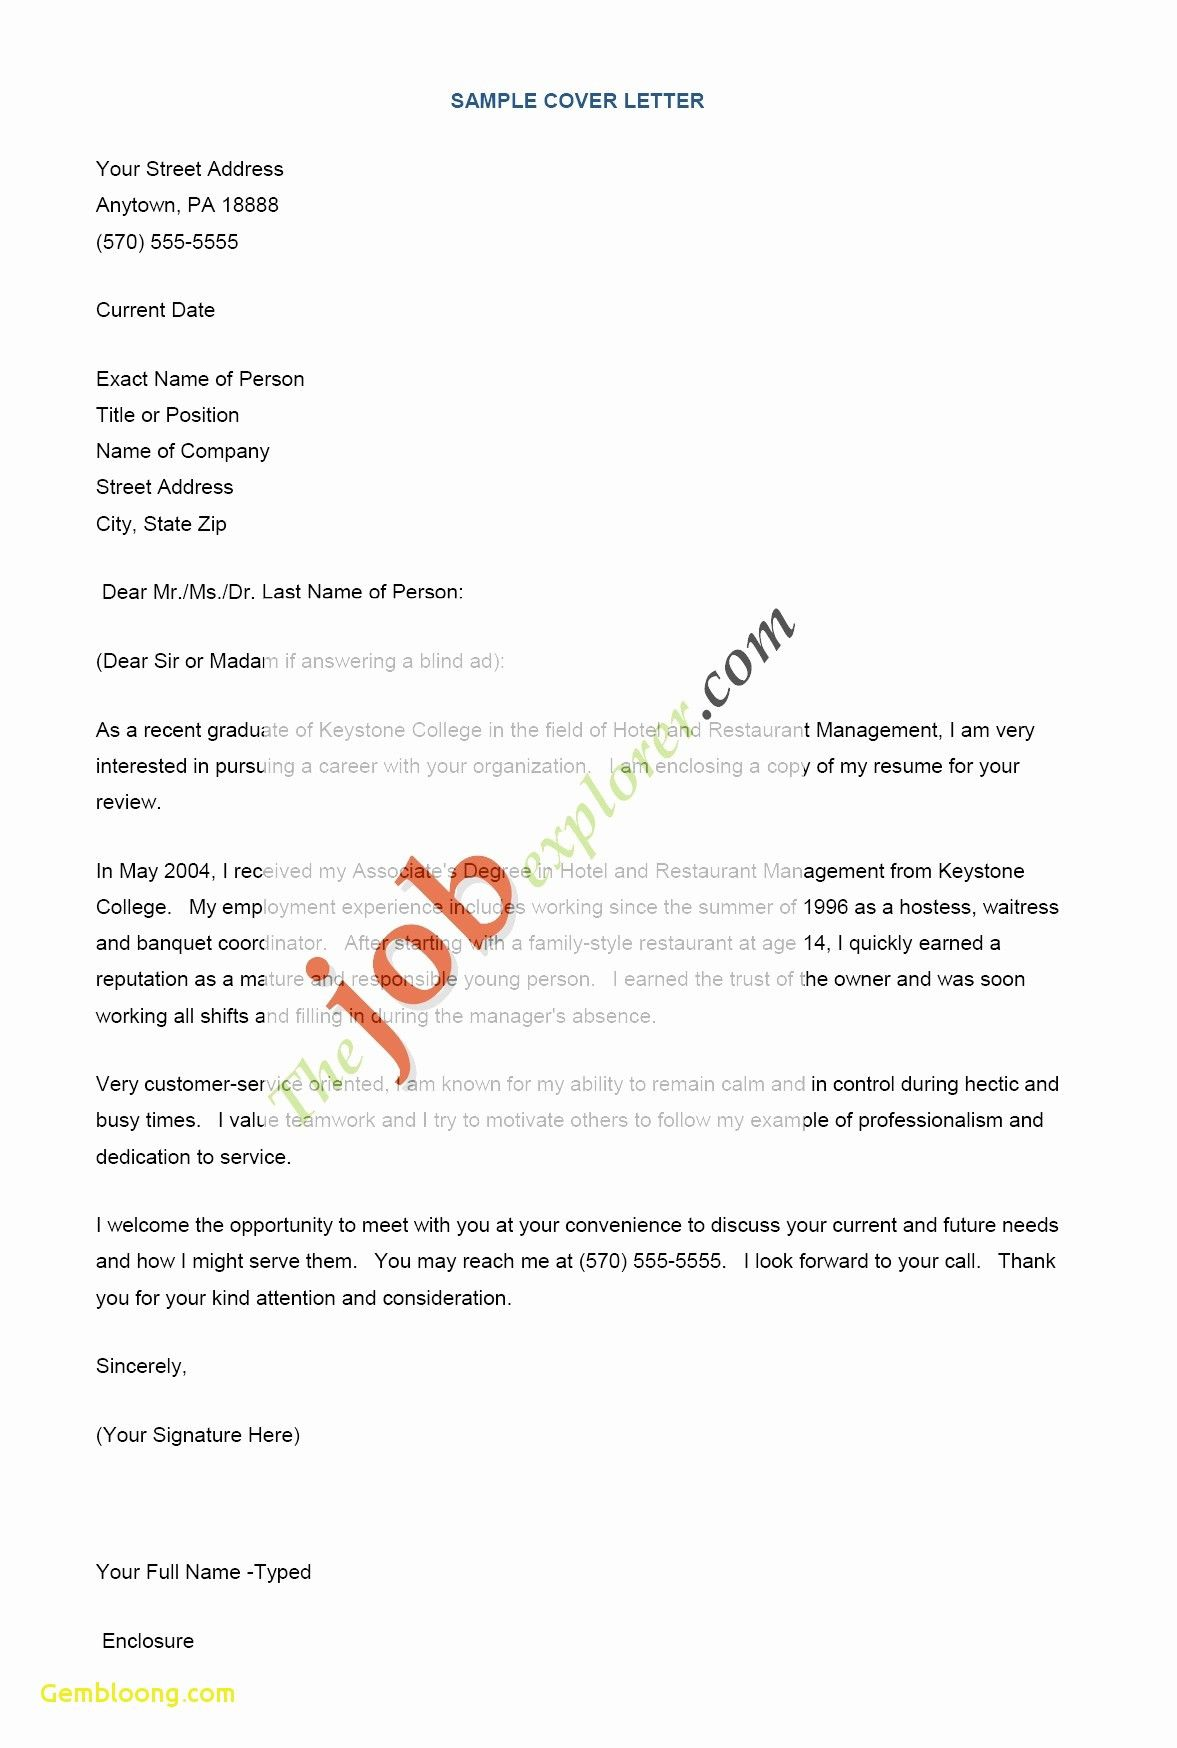 Cover Letter Thank You for the Opportunity Cover Letter Thank You